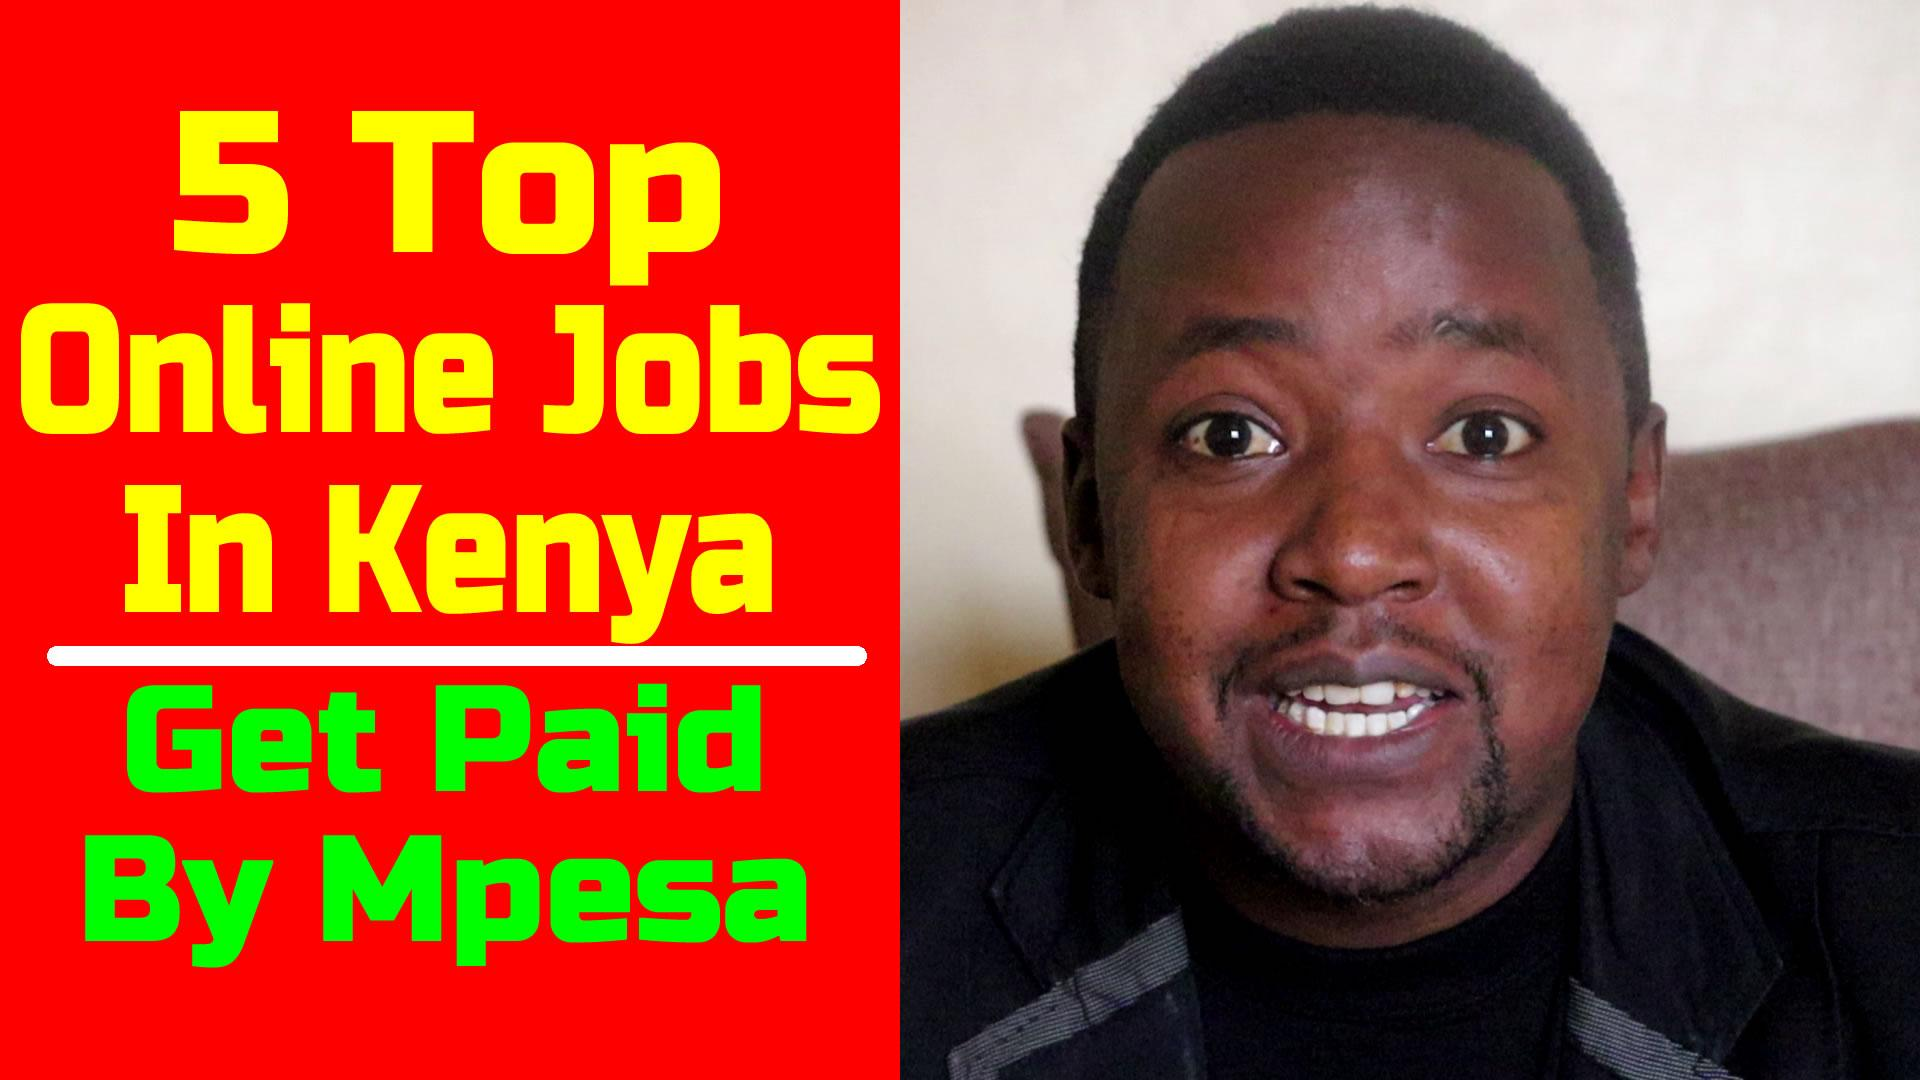 Online Jobs paying by Mpesa